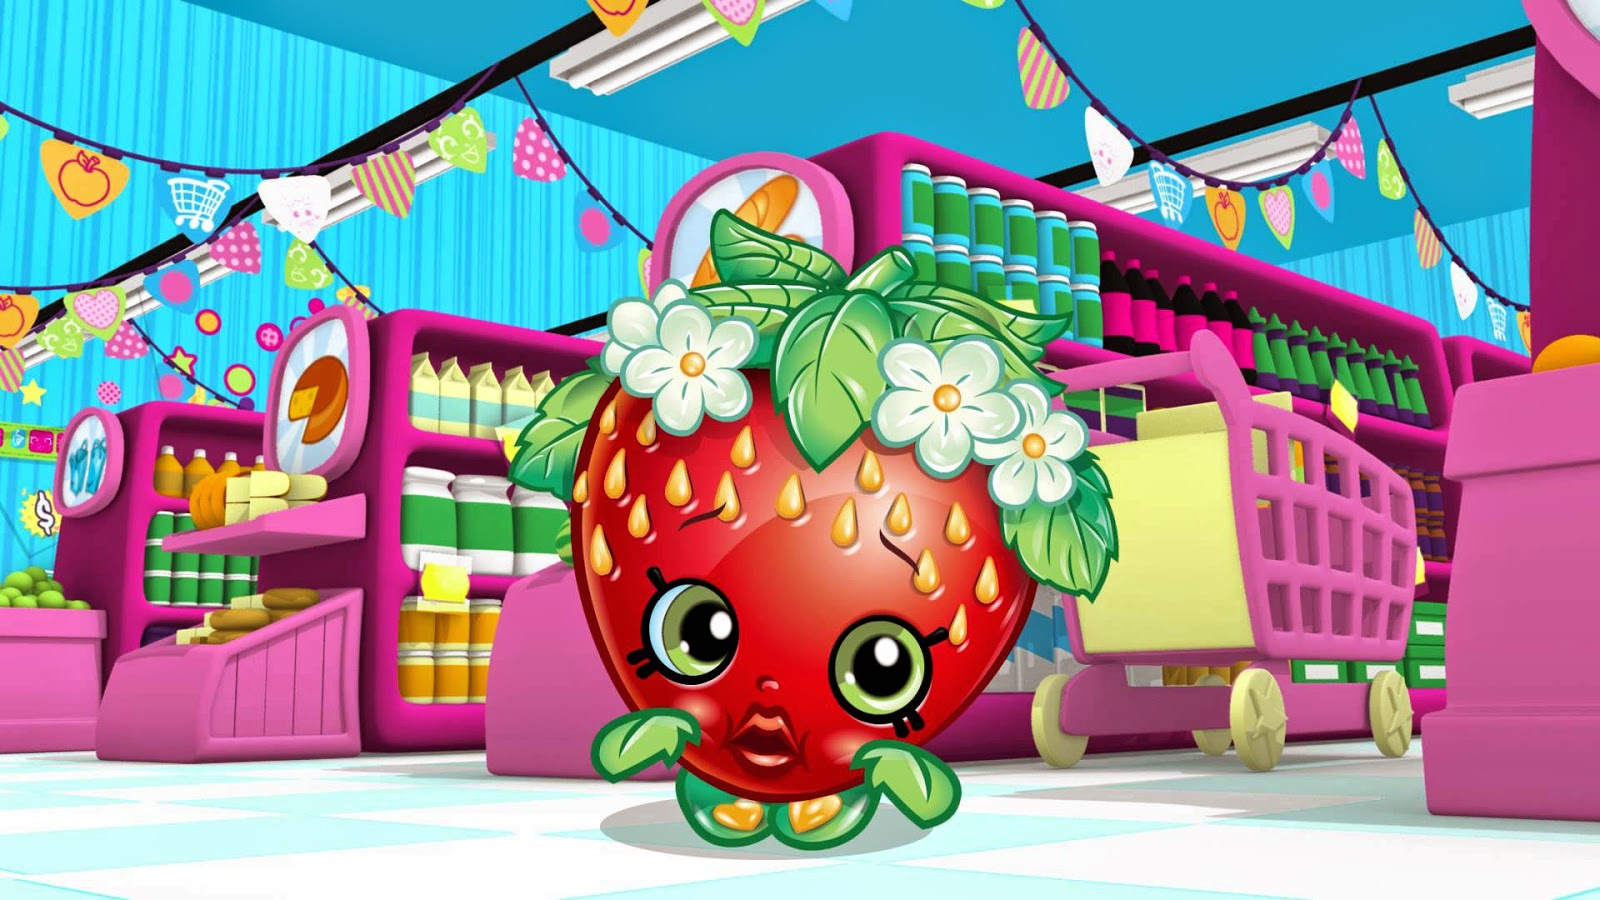 http://gallerycartoon.blogspot.com/2015/01/shopkins-cartoon-pictures-3.html